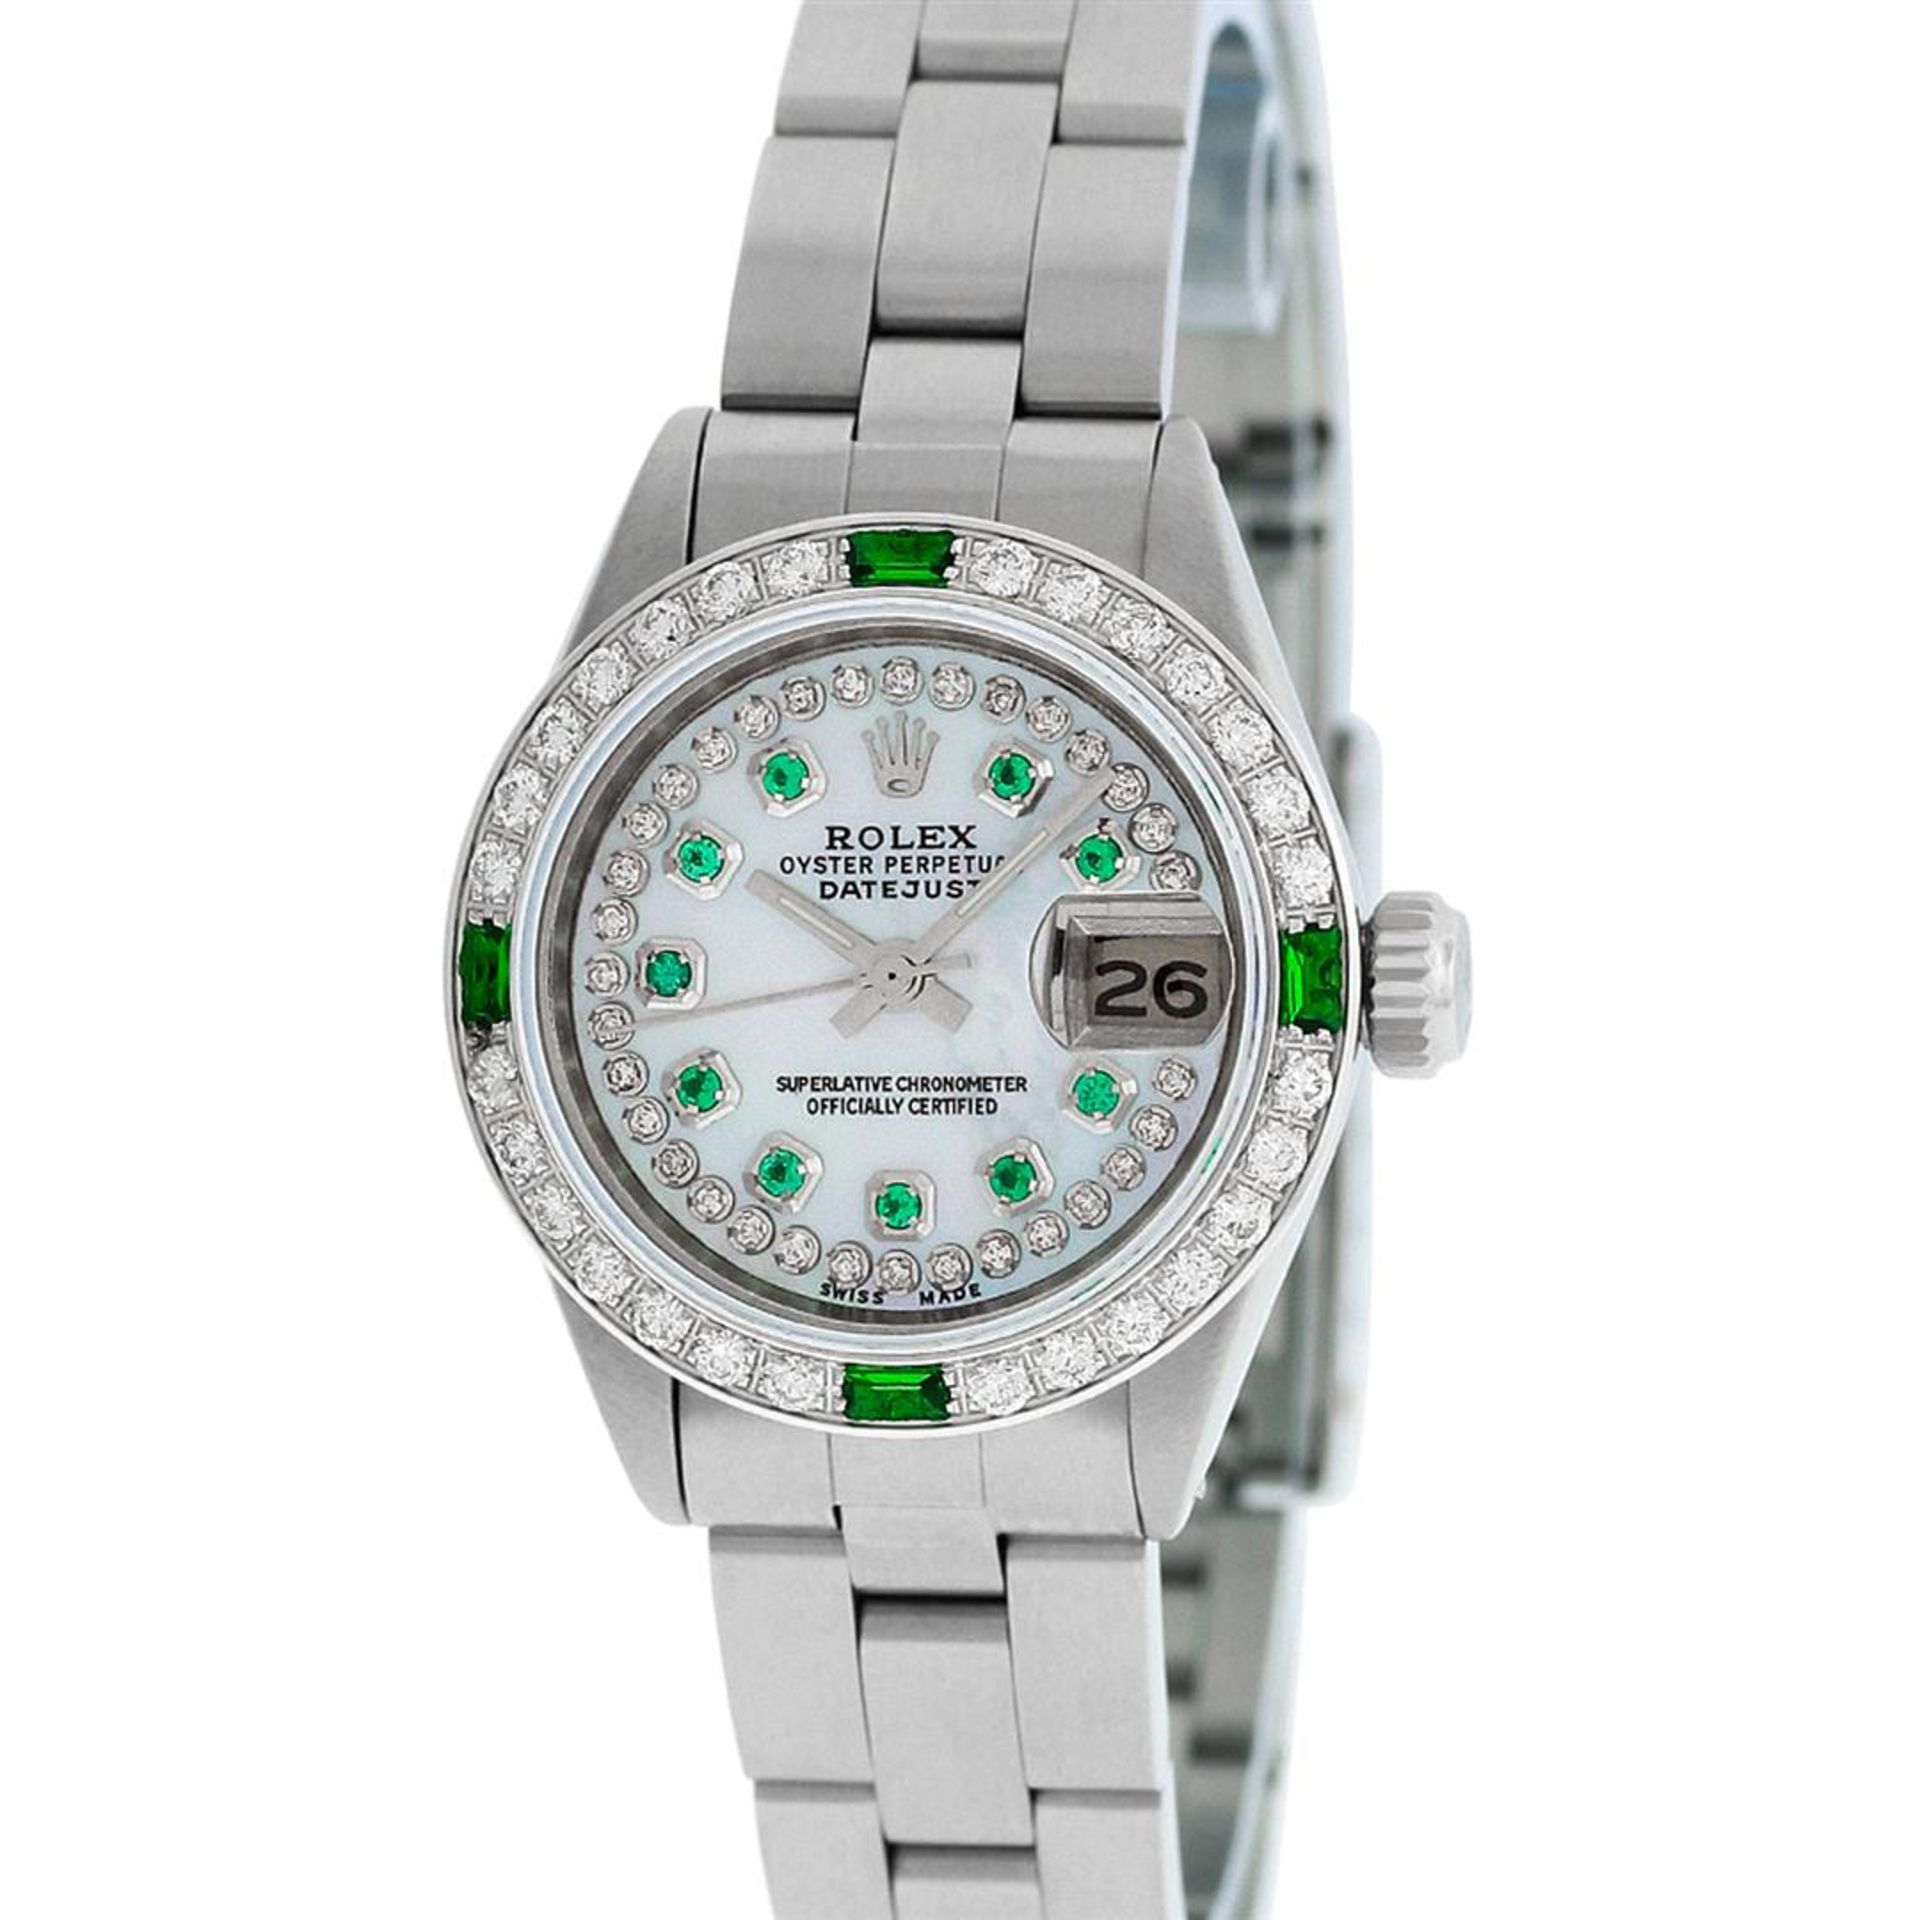 Rolex Ladies Stainless Steel MOP Emerald & Diamond Oyster Perpetaul Datejust Wri - Image 3 of 9